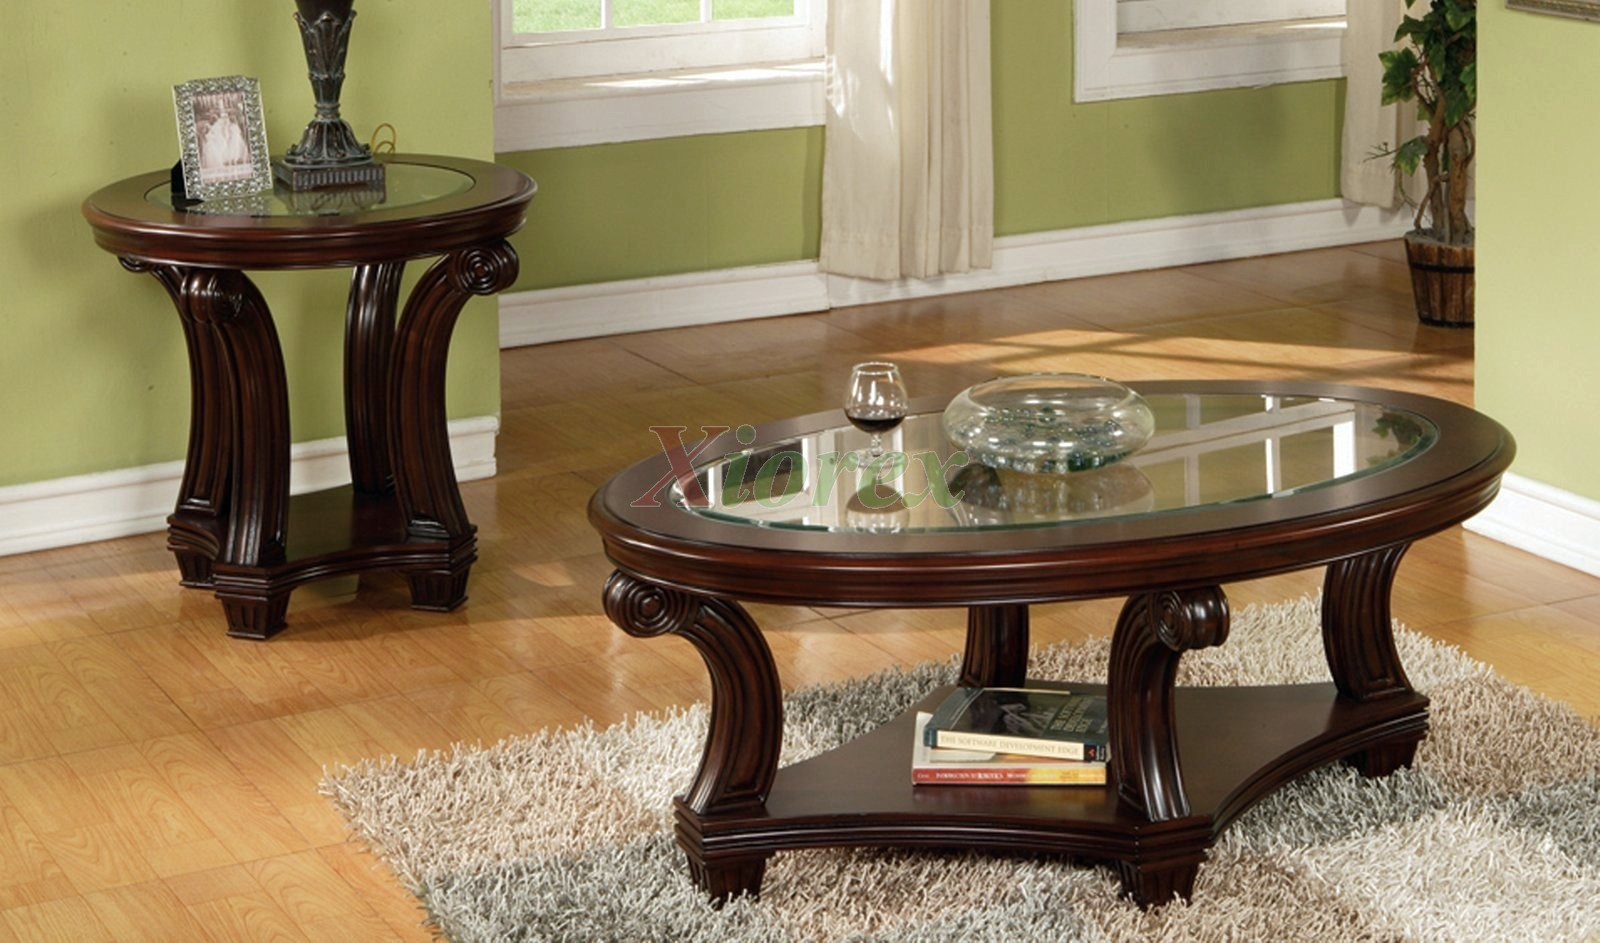 Round Coffee Tables And End Tables Perseus Glass Top Wooden Coffee Table Set Montreal Xiorex (View 7 of 10)